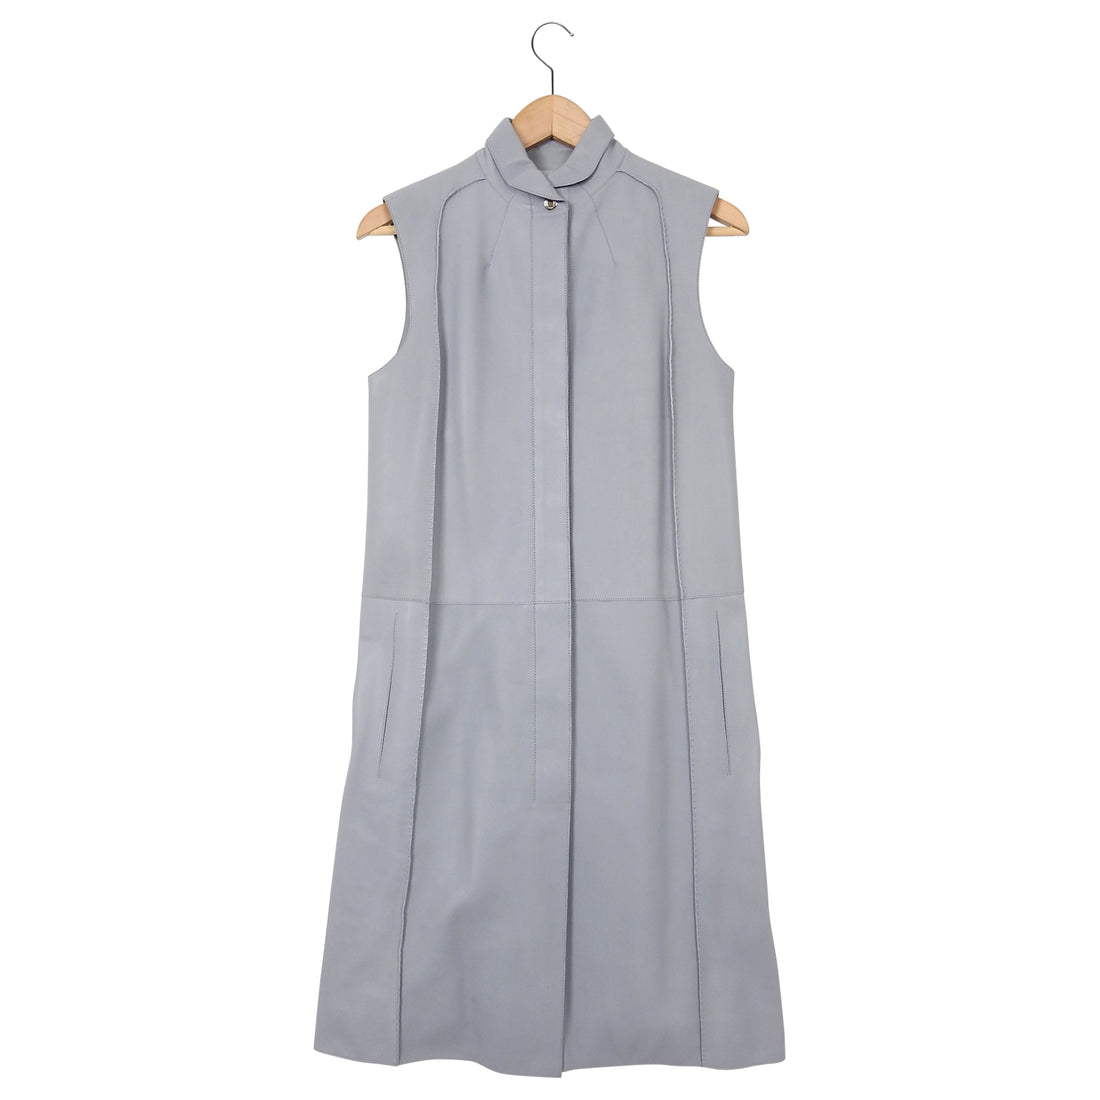 Hermes Light Blue Lambskin Leather Sleeveless Dress – FR34 / USA 2 / 4